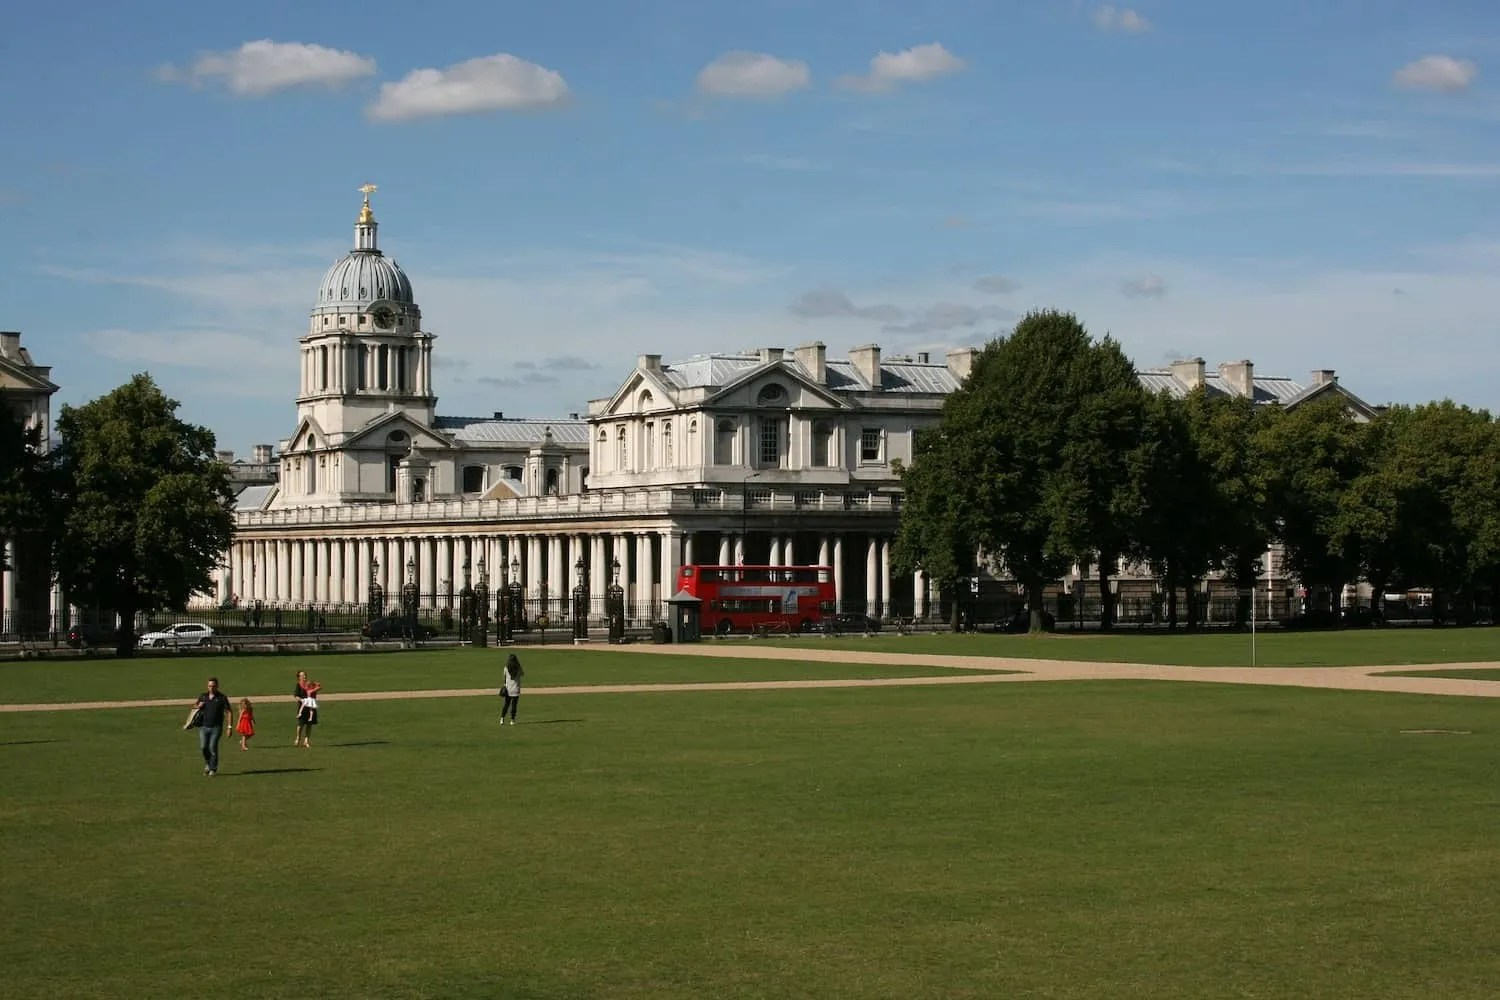 Greenwich Day Trip - Old royal Naval College